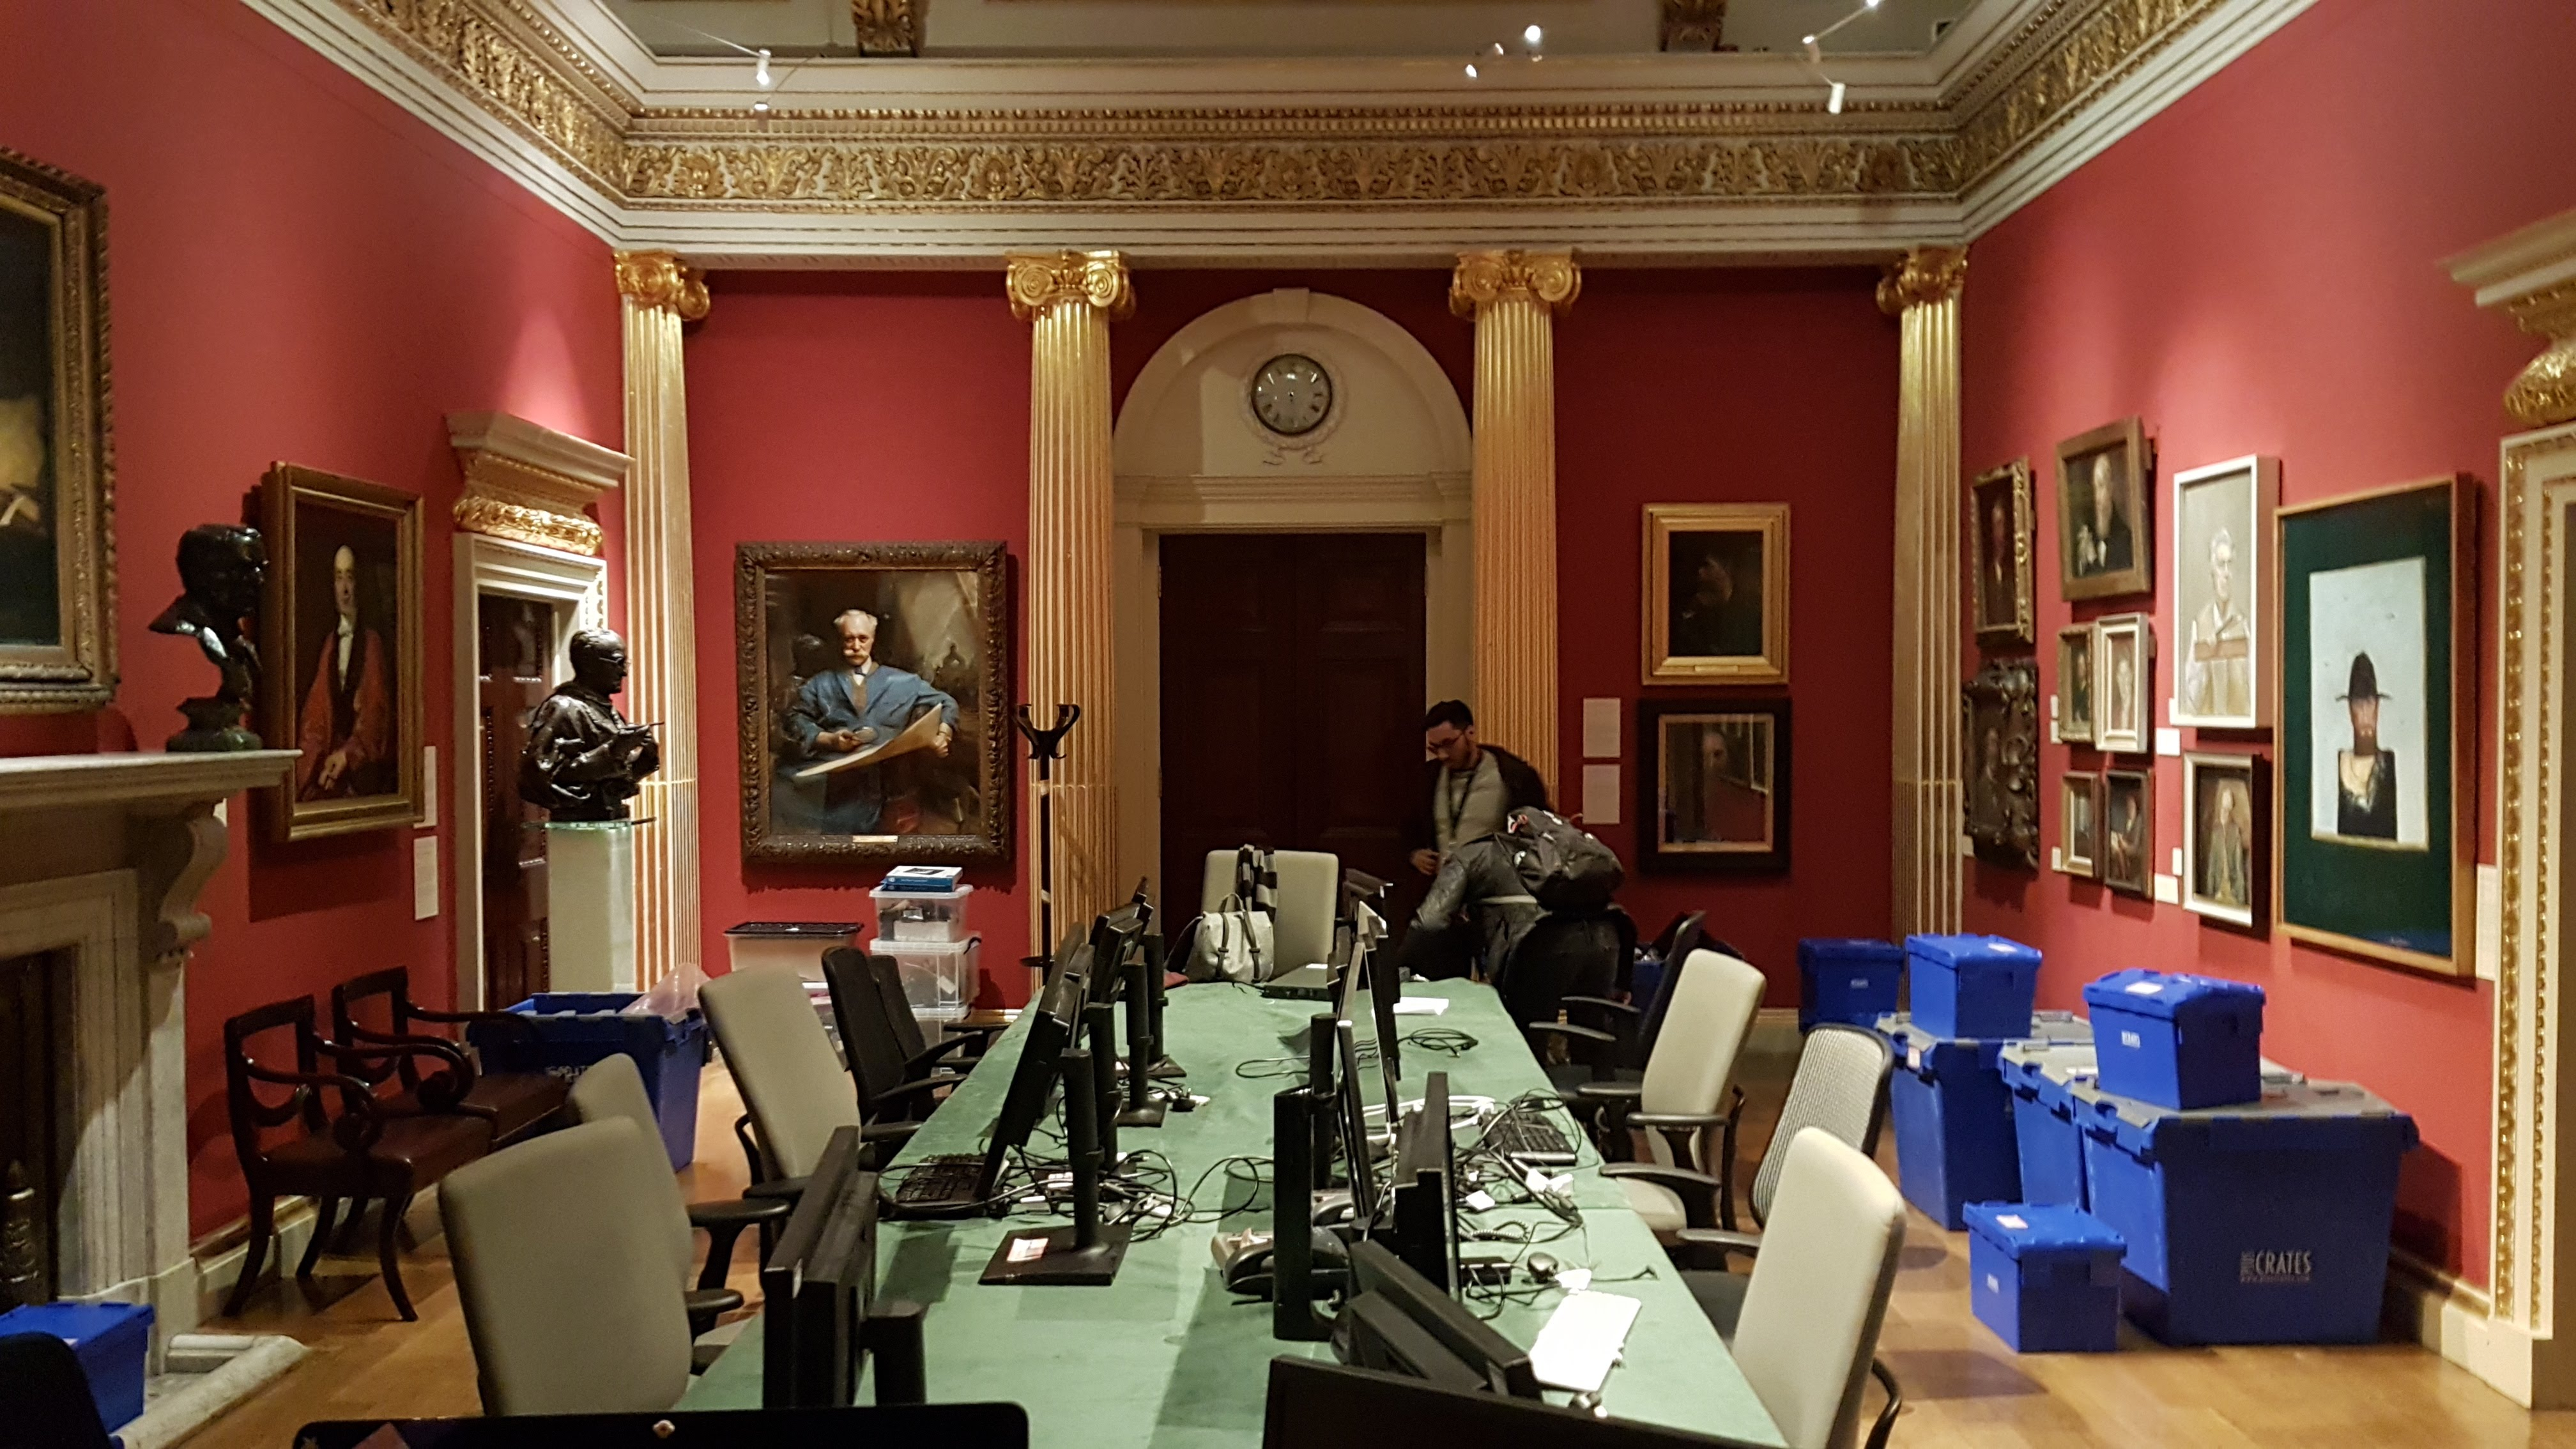 general assembly room at the RA